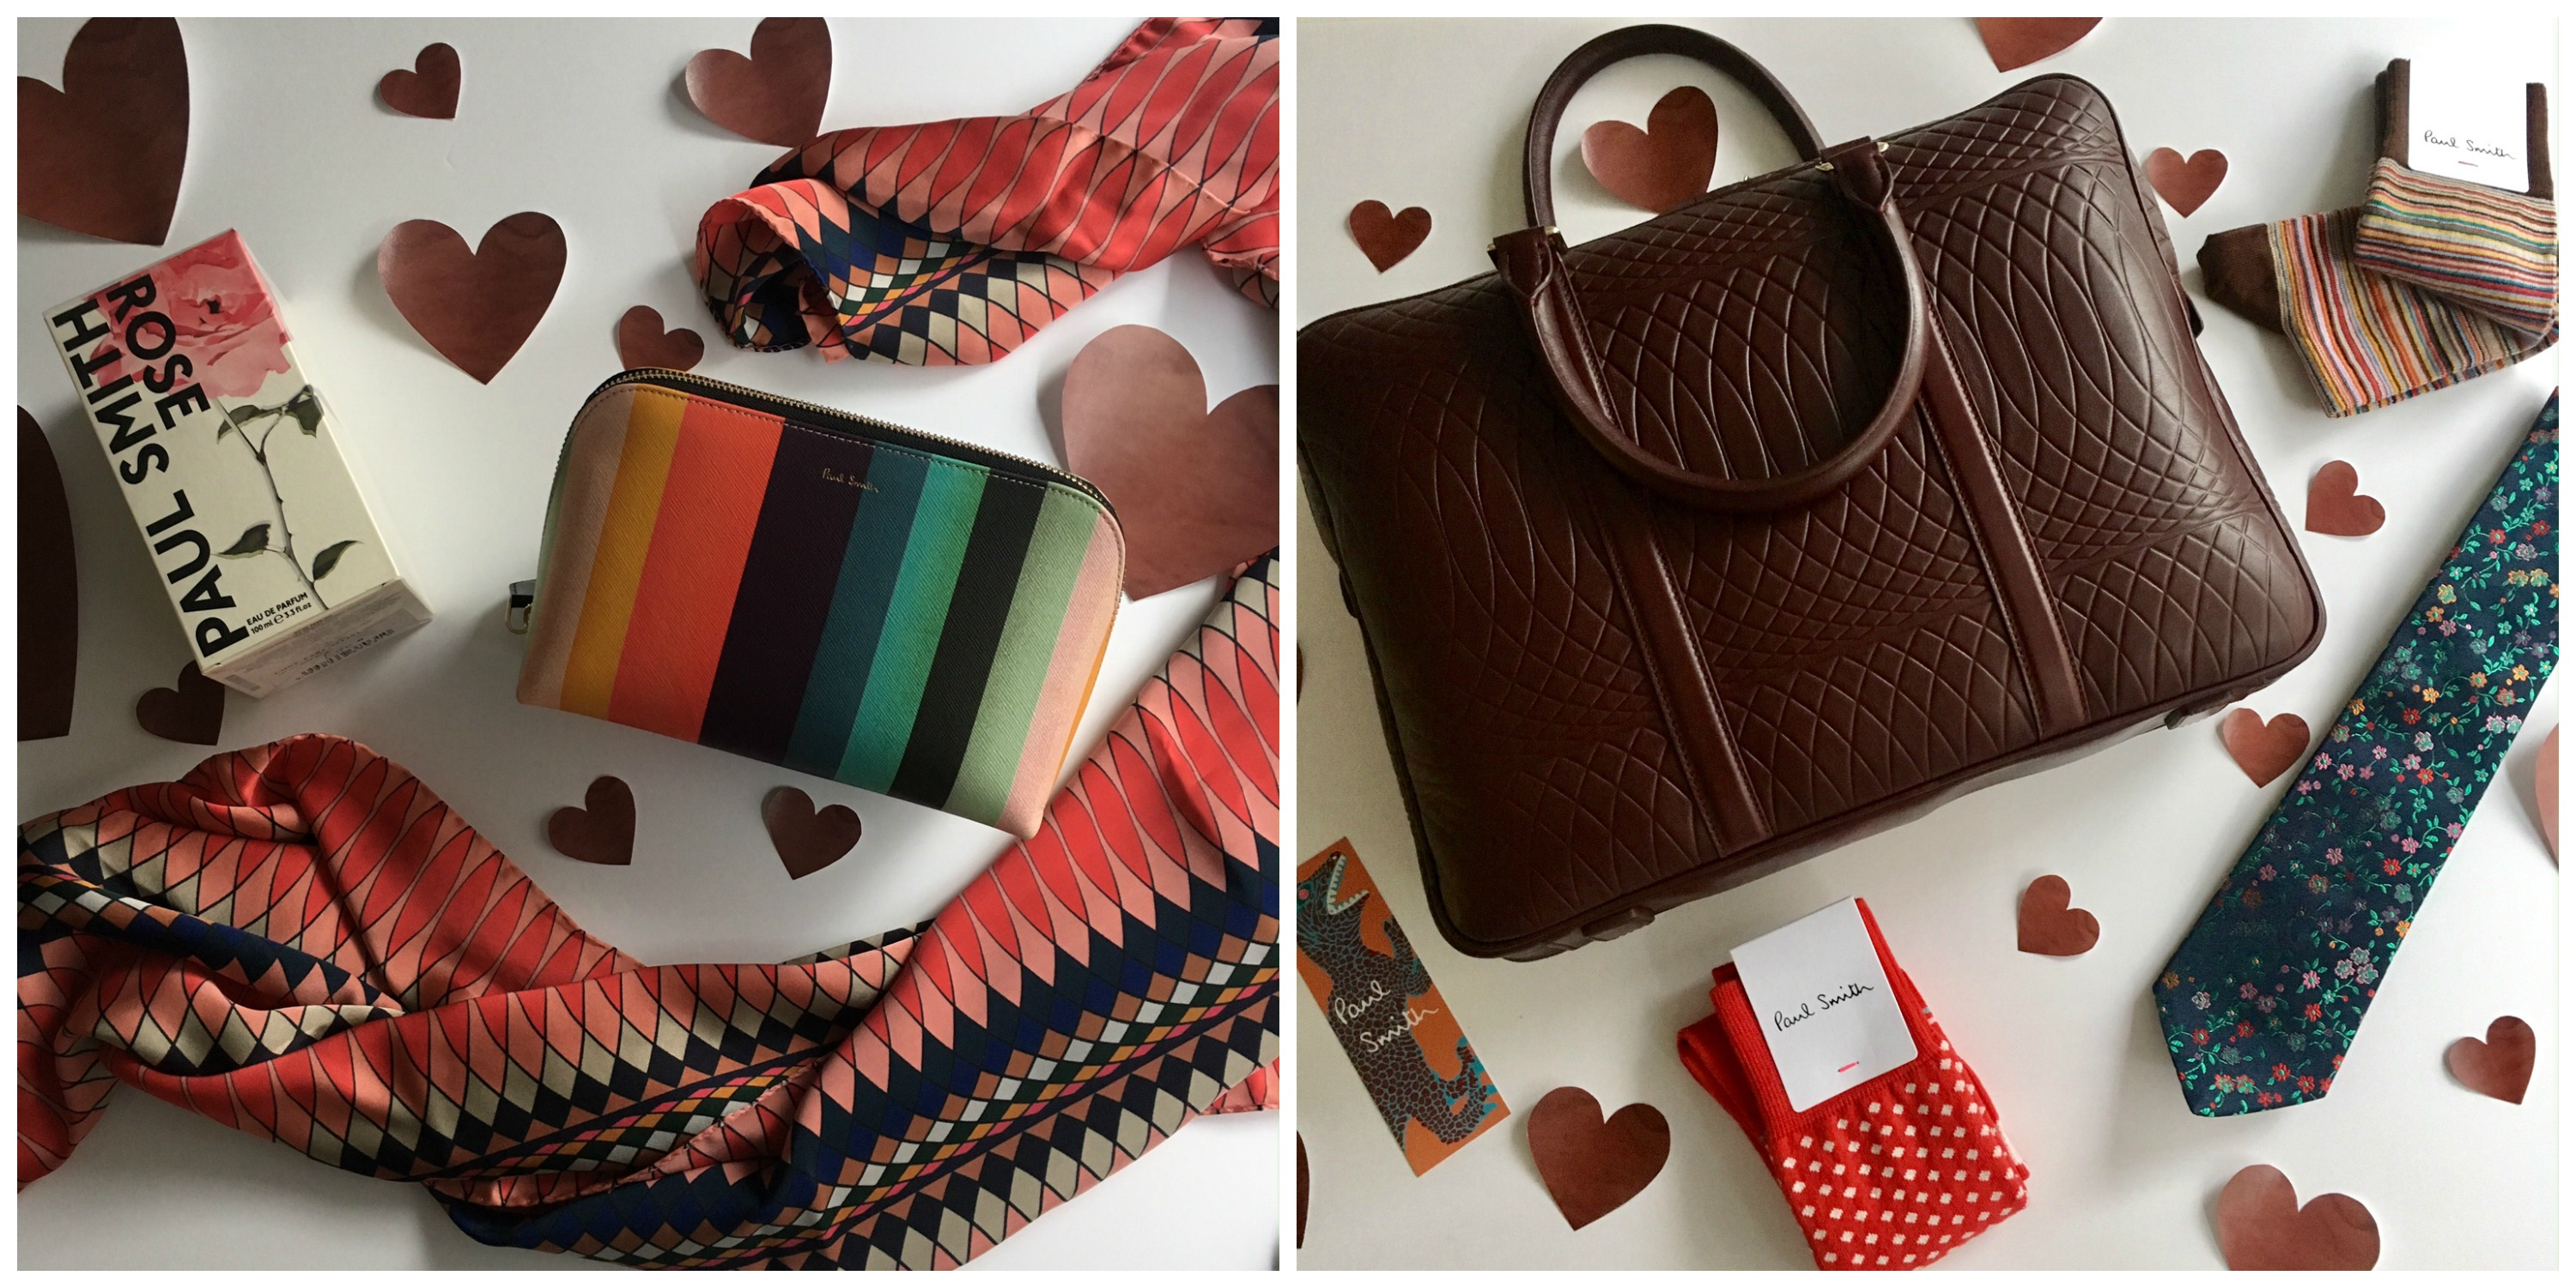 Paul Smith Mailbox Valentines Day gift ideas